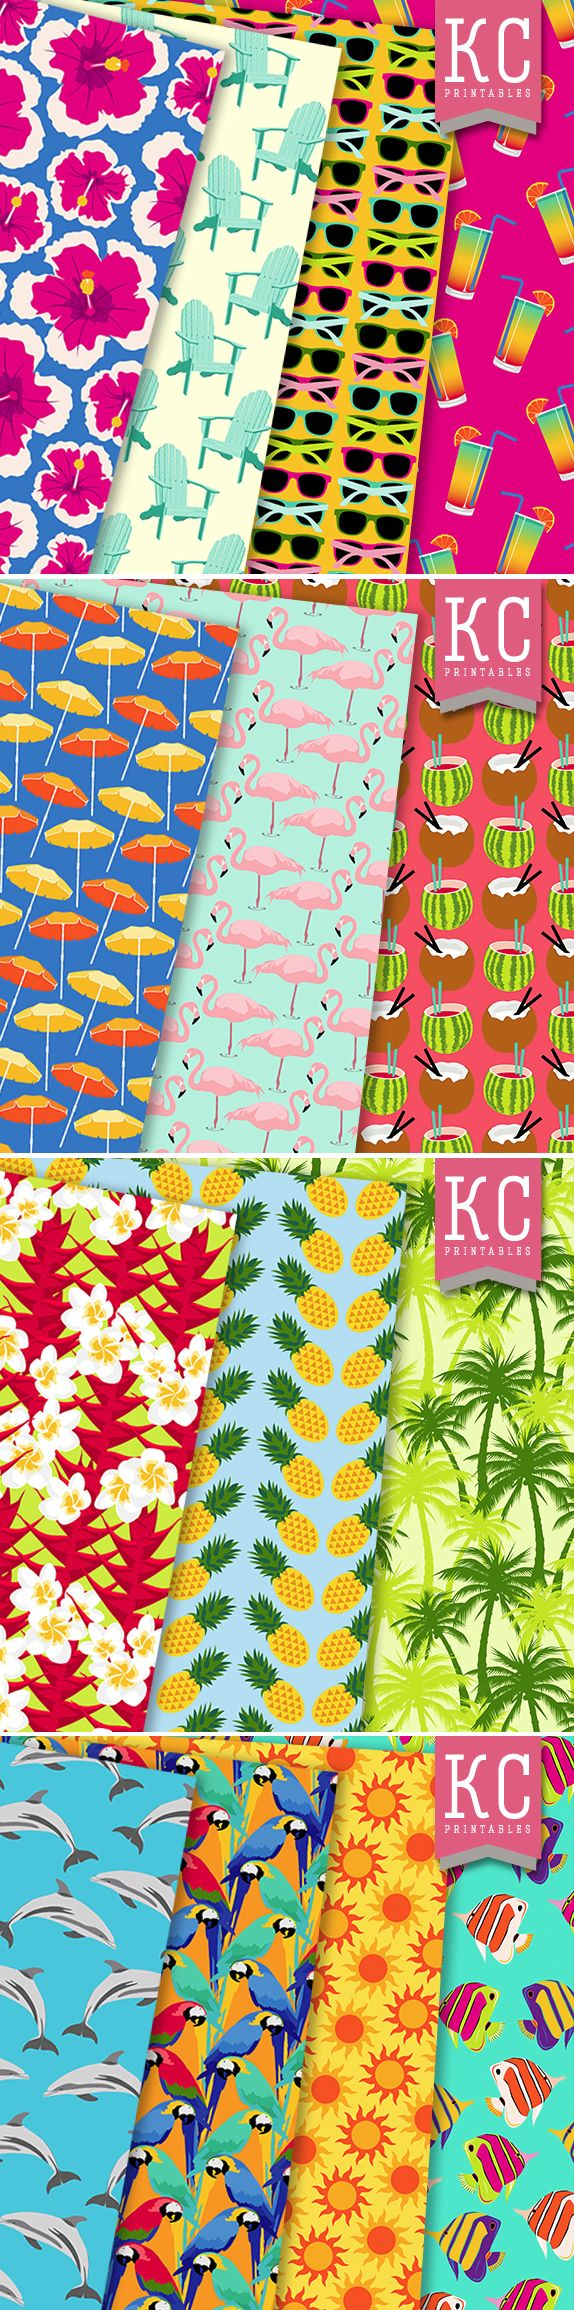 Tropical Twist scrapbooking papers from KCPrintables on Etsy www.etsy.com/uk/shop/KCPrintables #tropical #flamingo #cocktails #pineapple #illustration #pattern #sunglasses #floral #parrot #fish